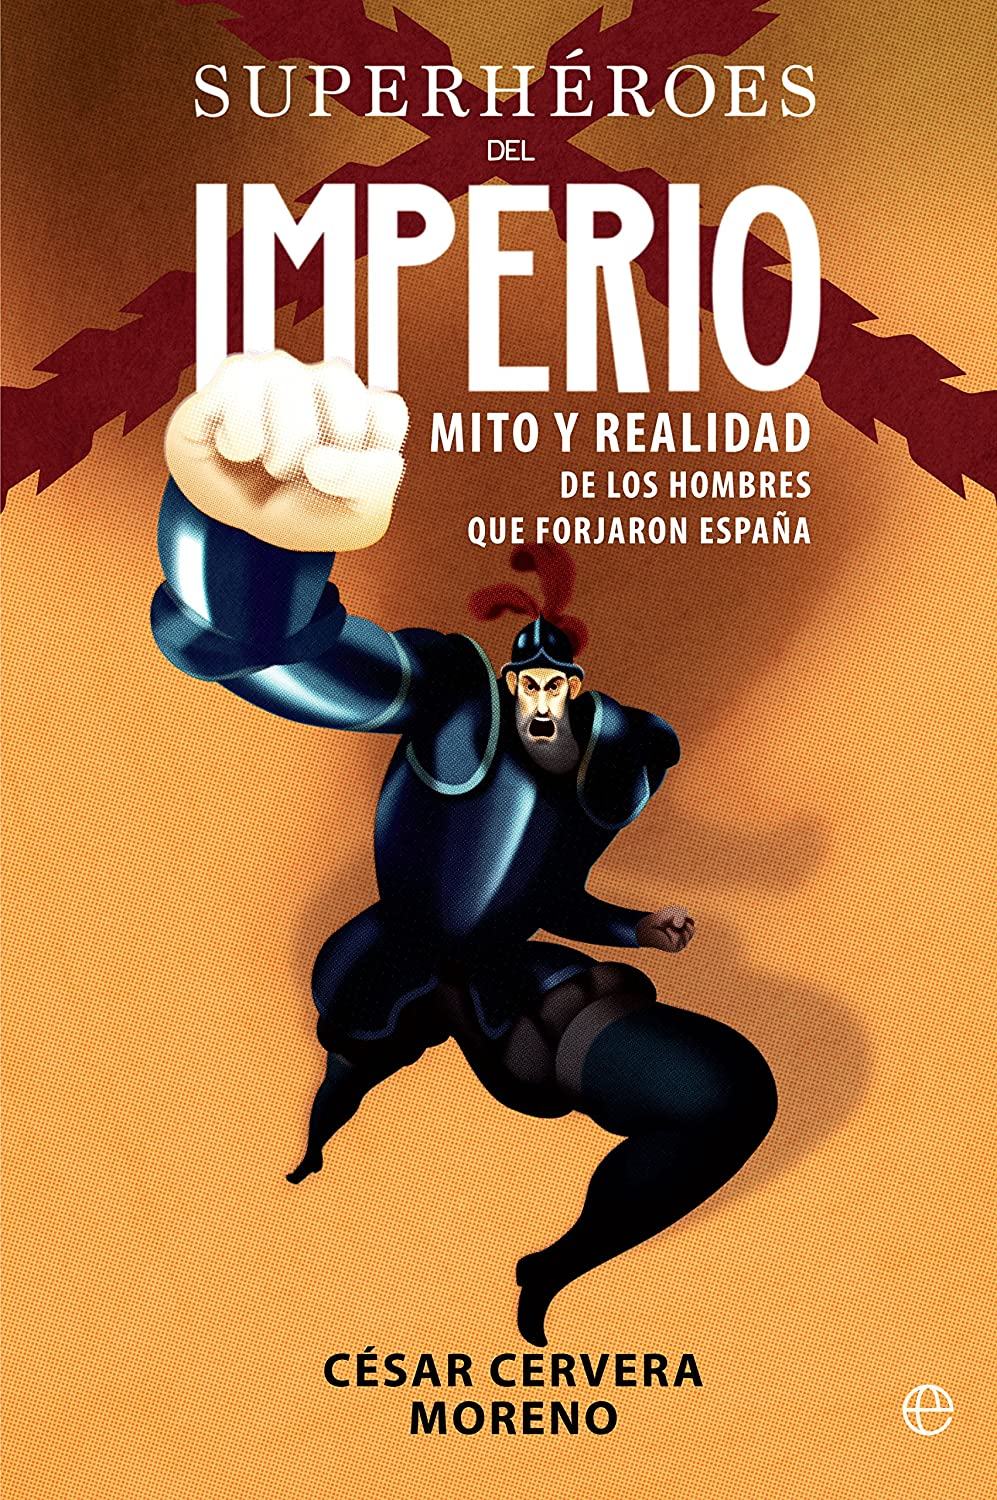 Superhéroes del Imperio (Historia) eBook: Cervera, César: Amazon ...